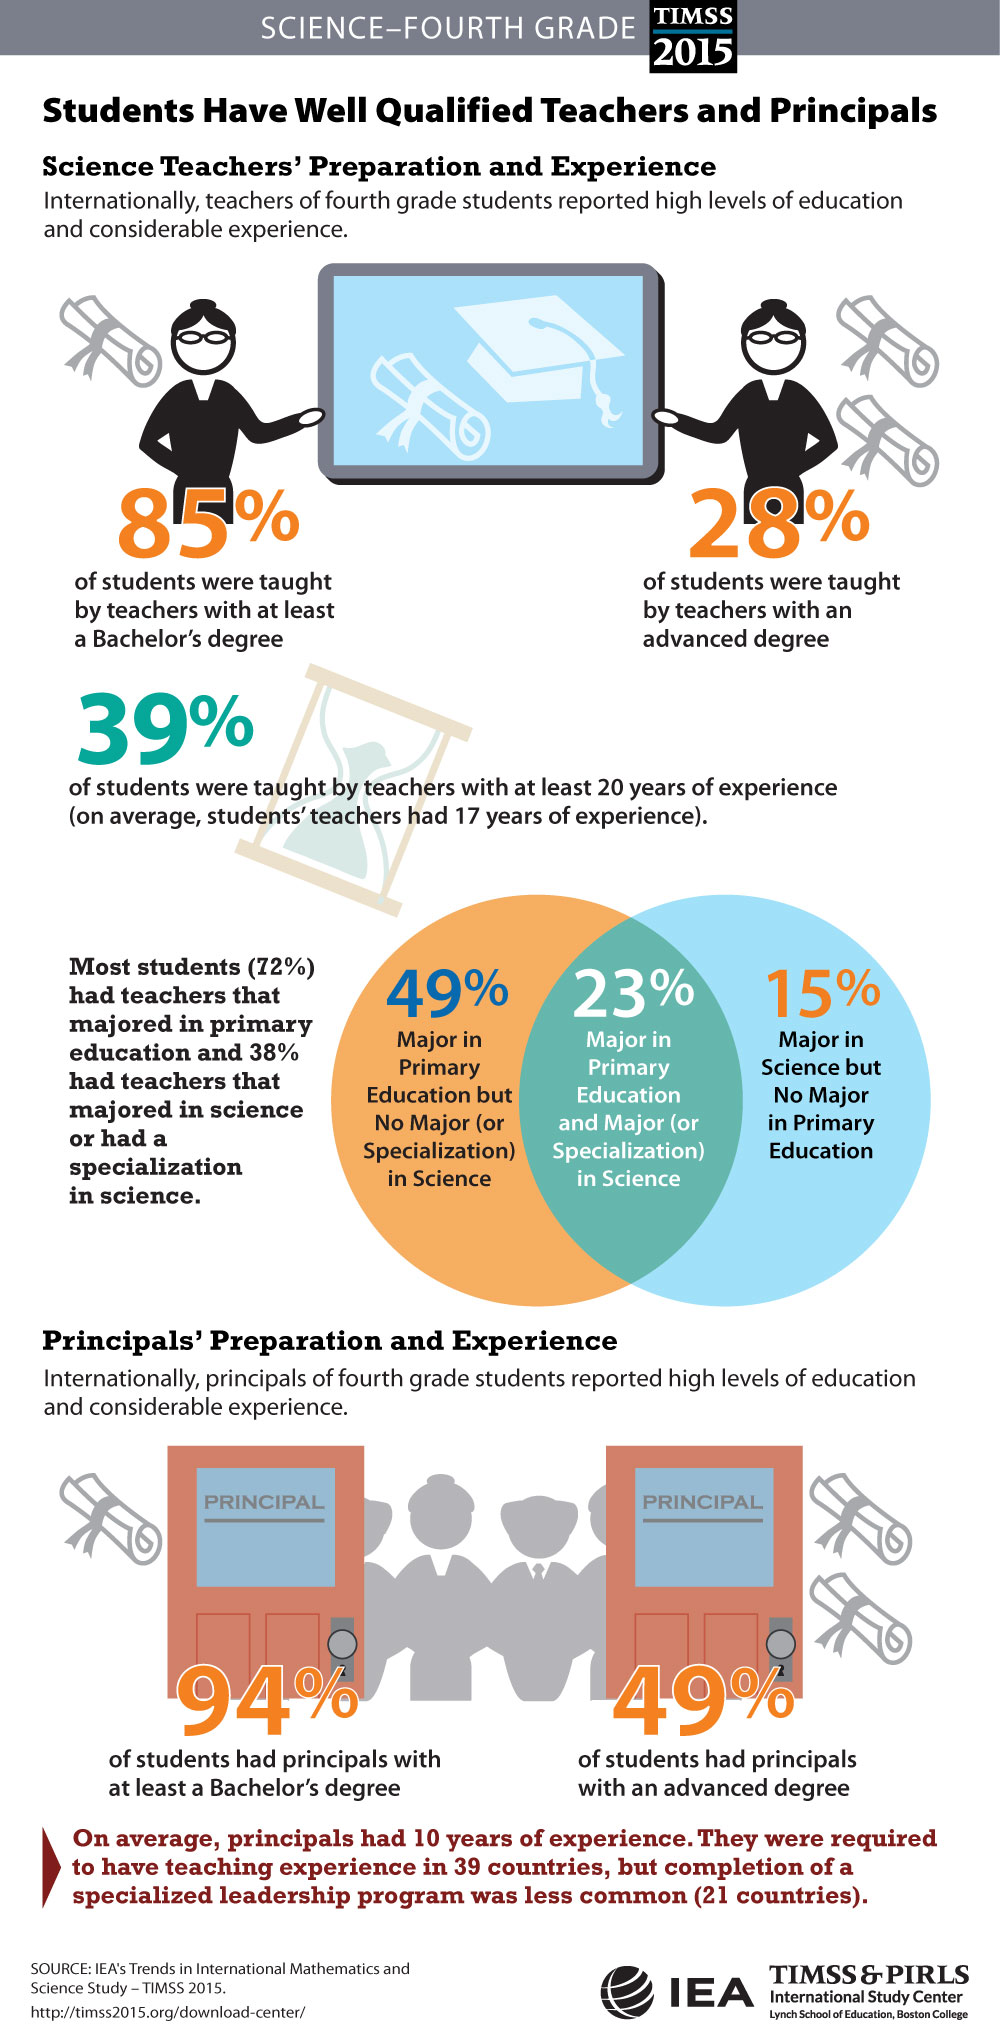 Teachers' and Principals' Preparation (G4) Infographic